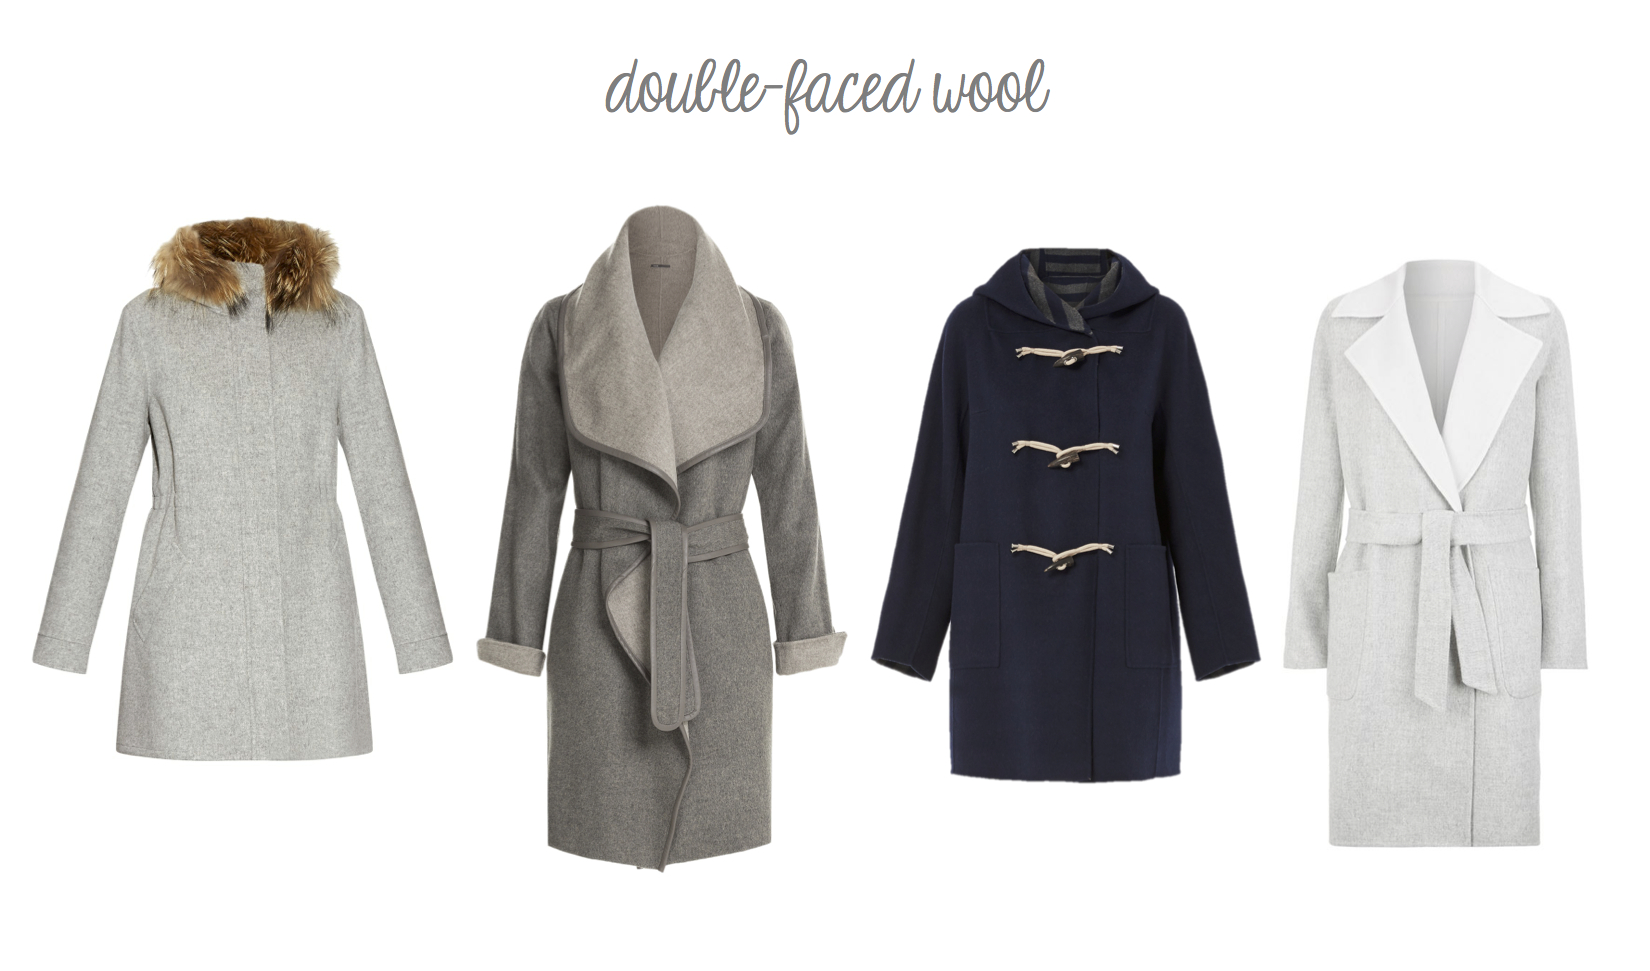 double-faced wool coats for fall